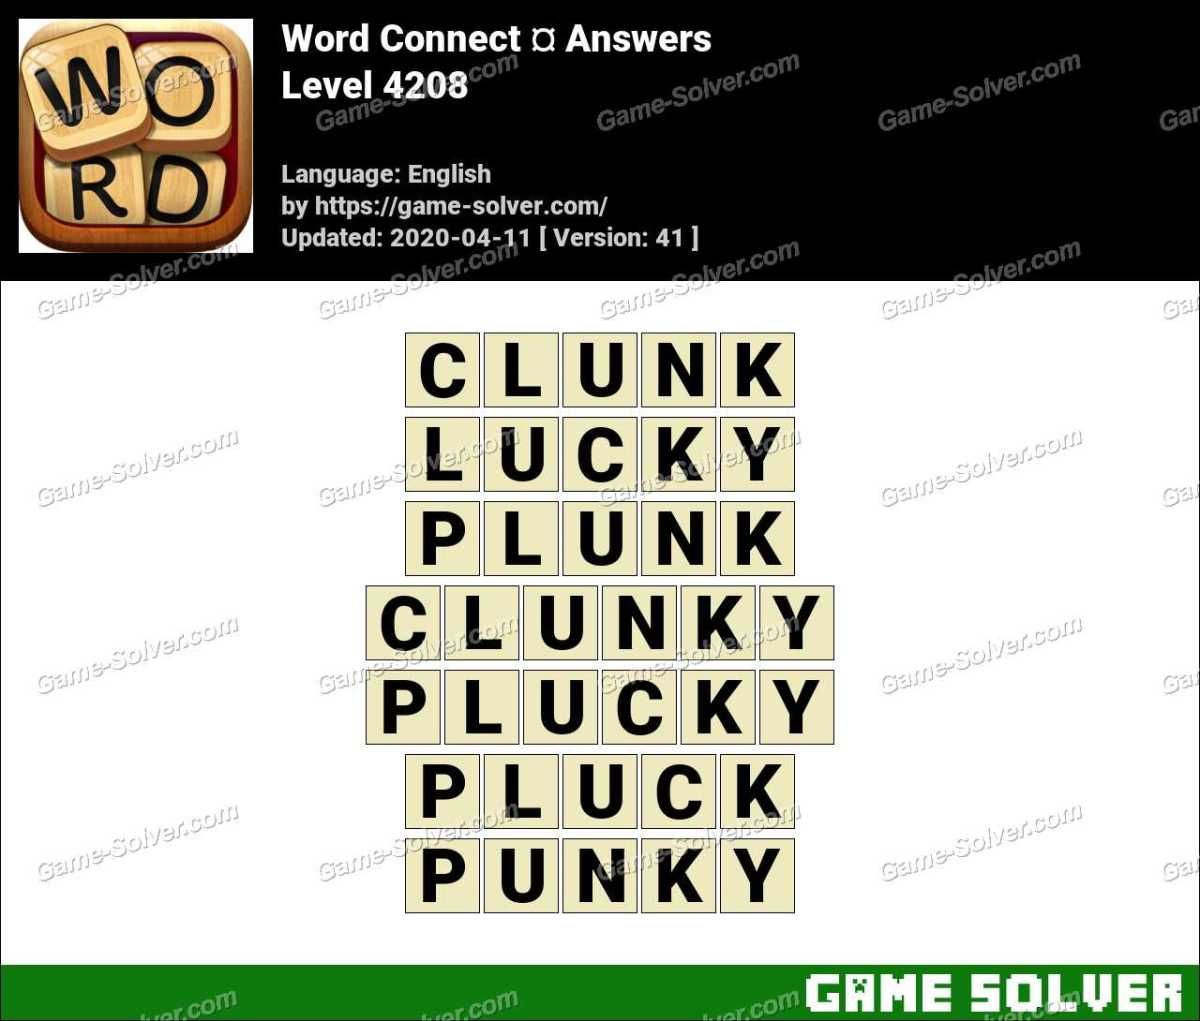 Word Connect Level 4208 Answers